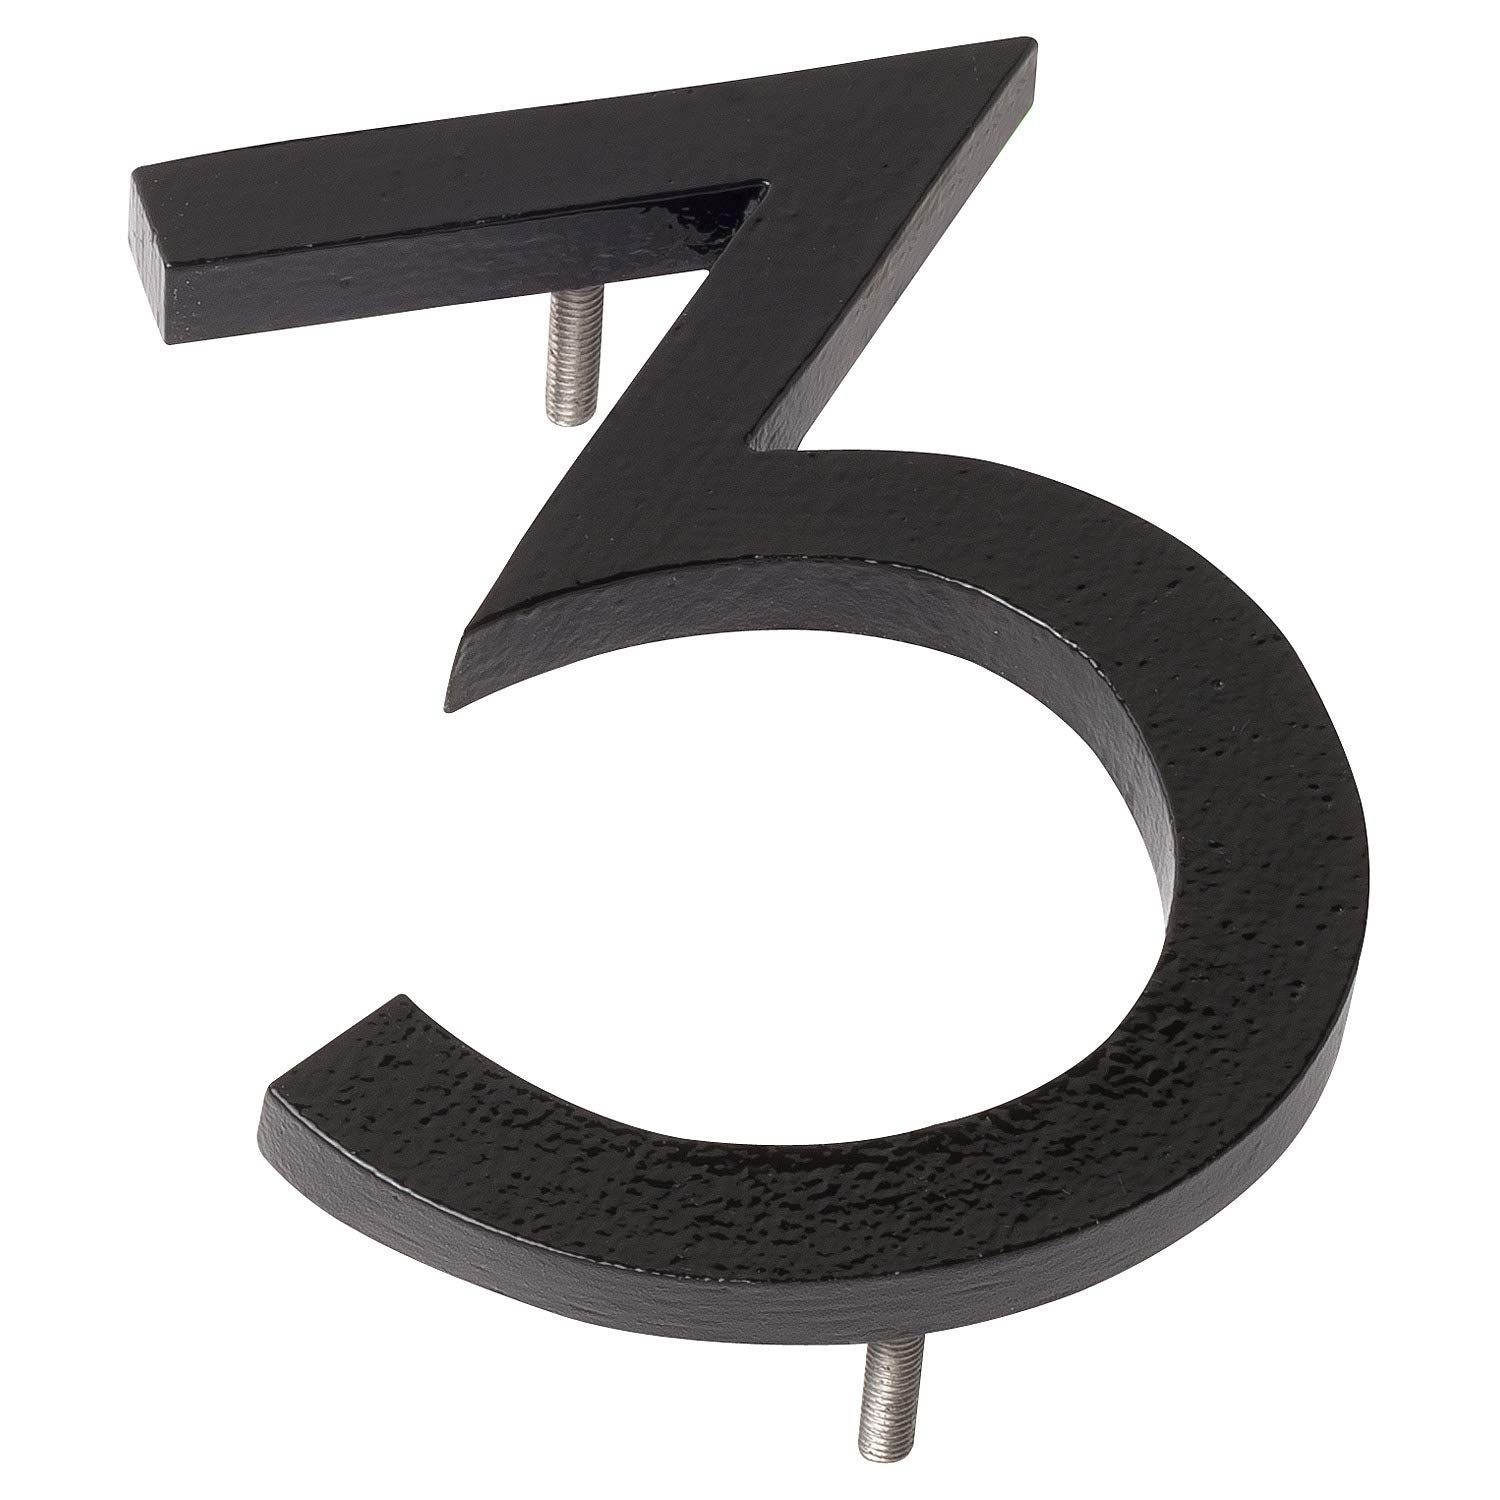 Montague Metal Products MHN-08-3-F-BK1 Floating House Number, 8'' x 6'' x 0.375'' Black